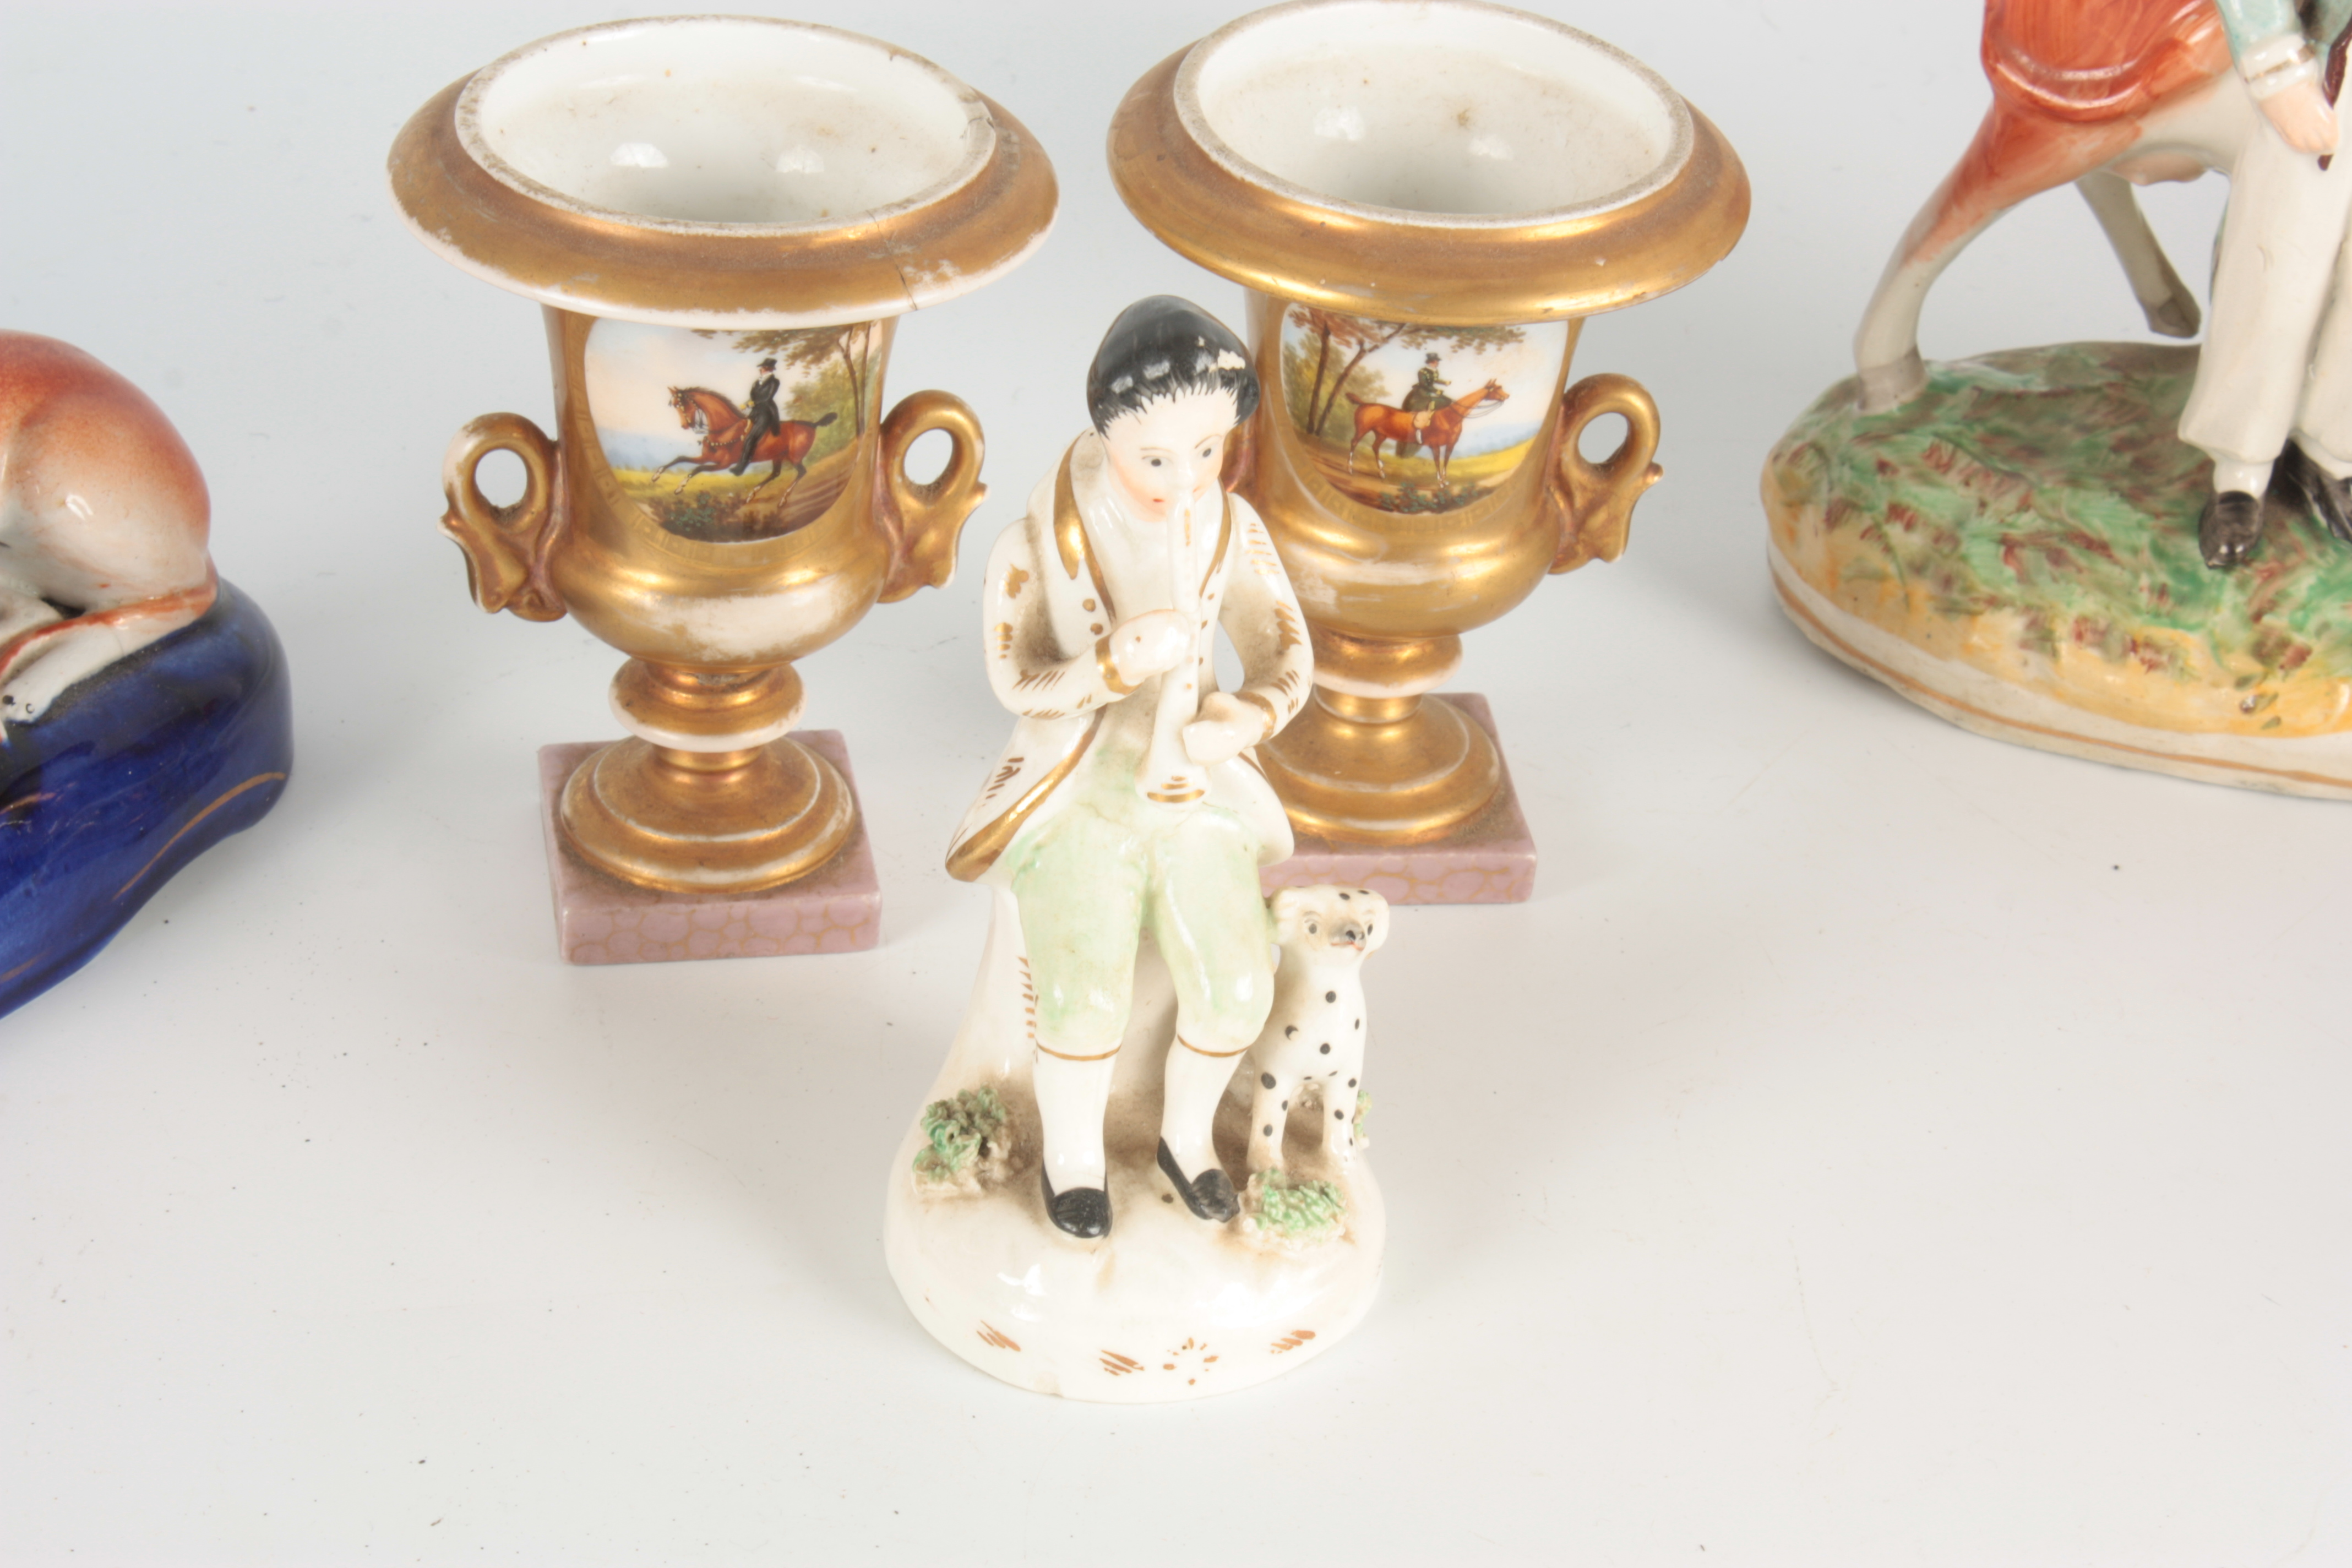 A 19TH CENTURY STAFFORDSHIRE FIGURE depicting a seated piper with dog at foot 12.5cm high A - Image 3 of 6